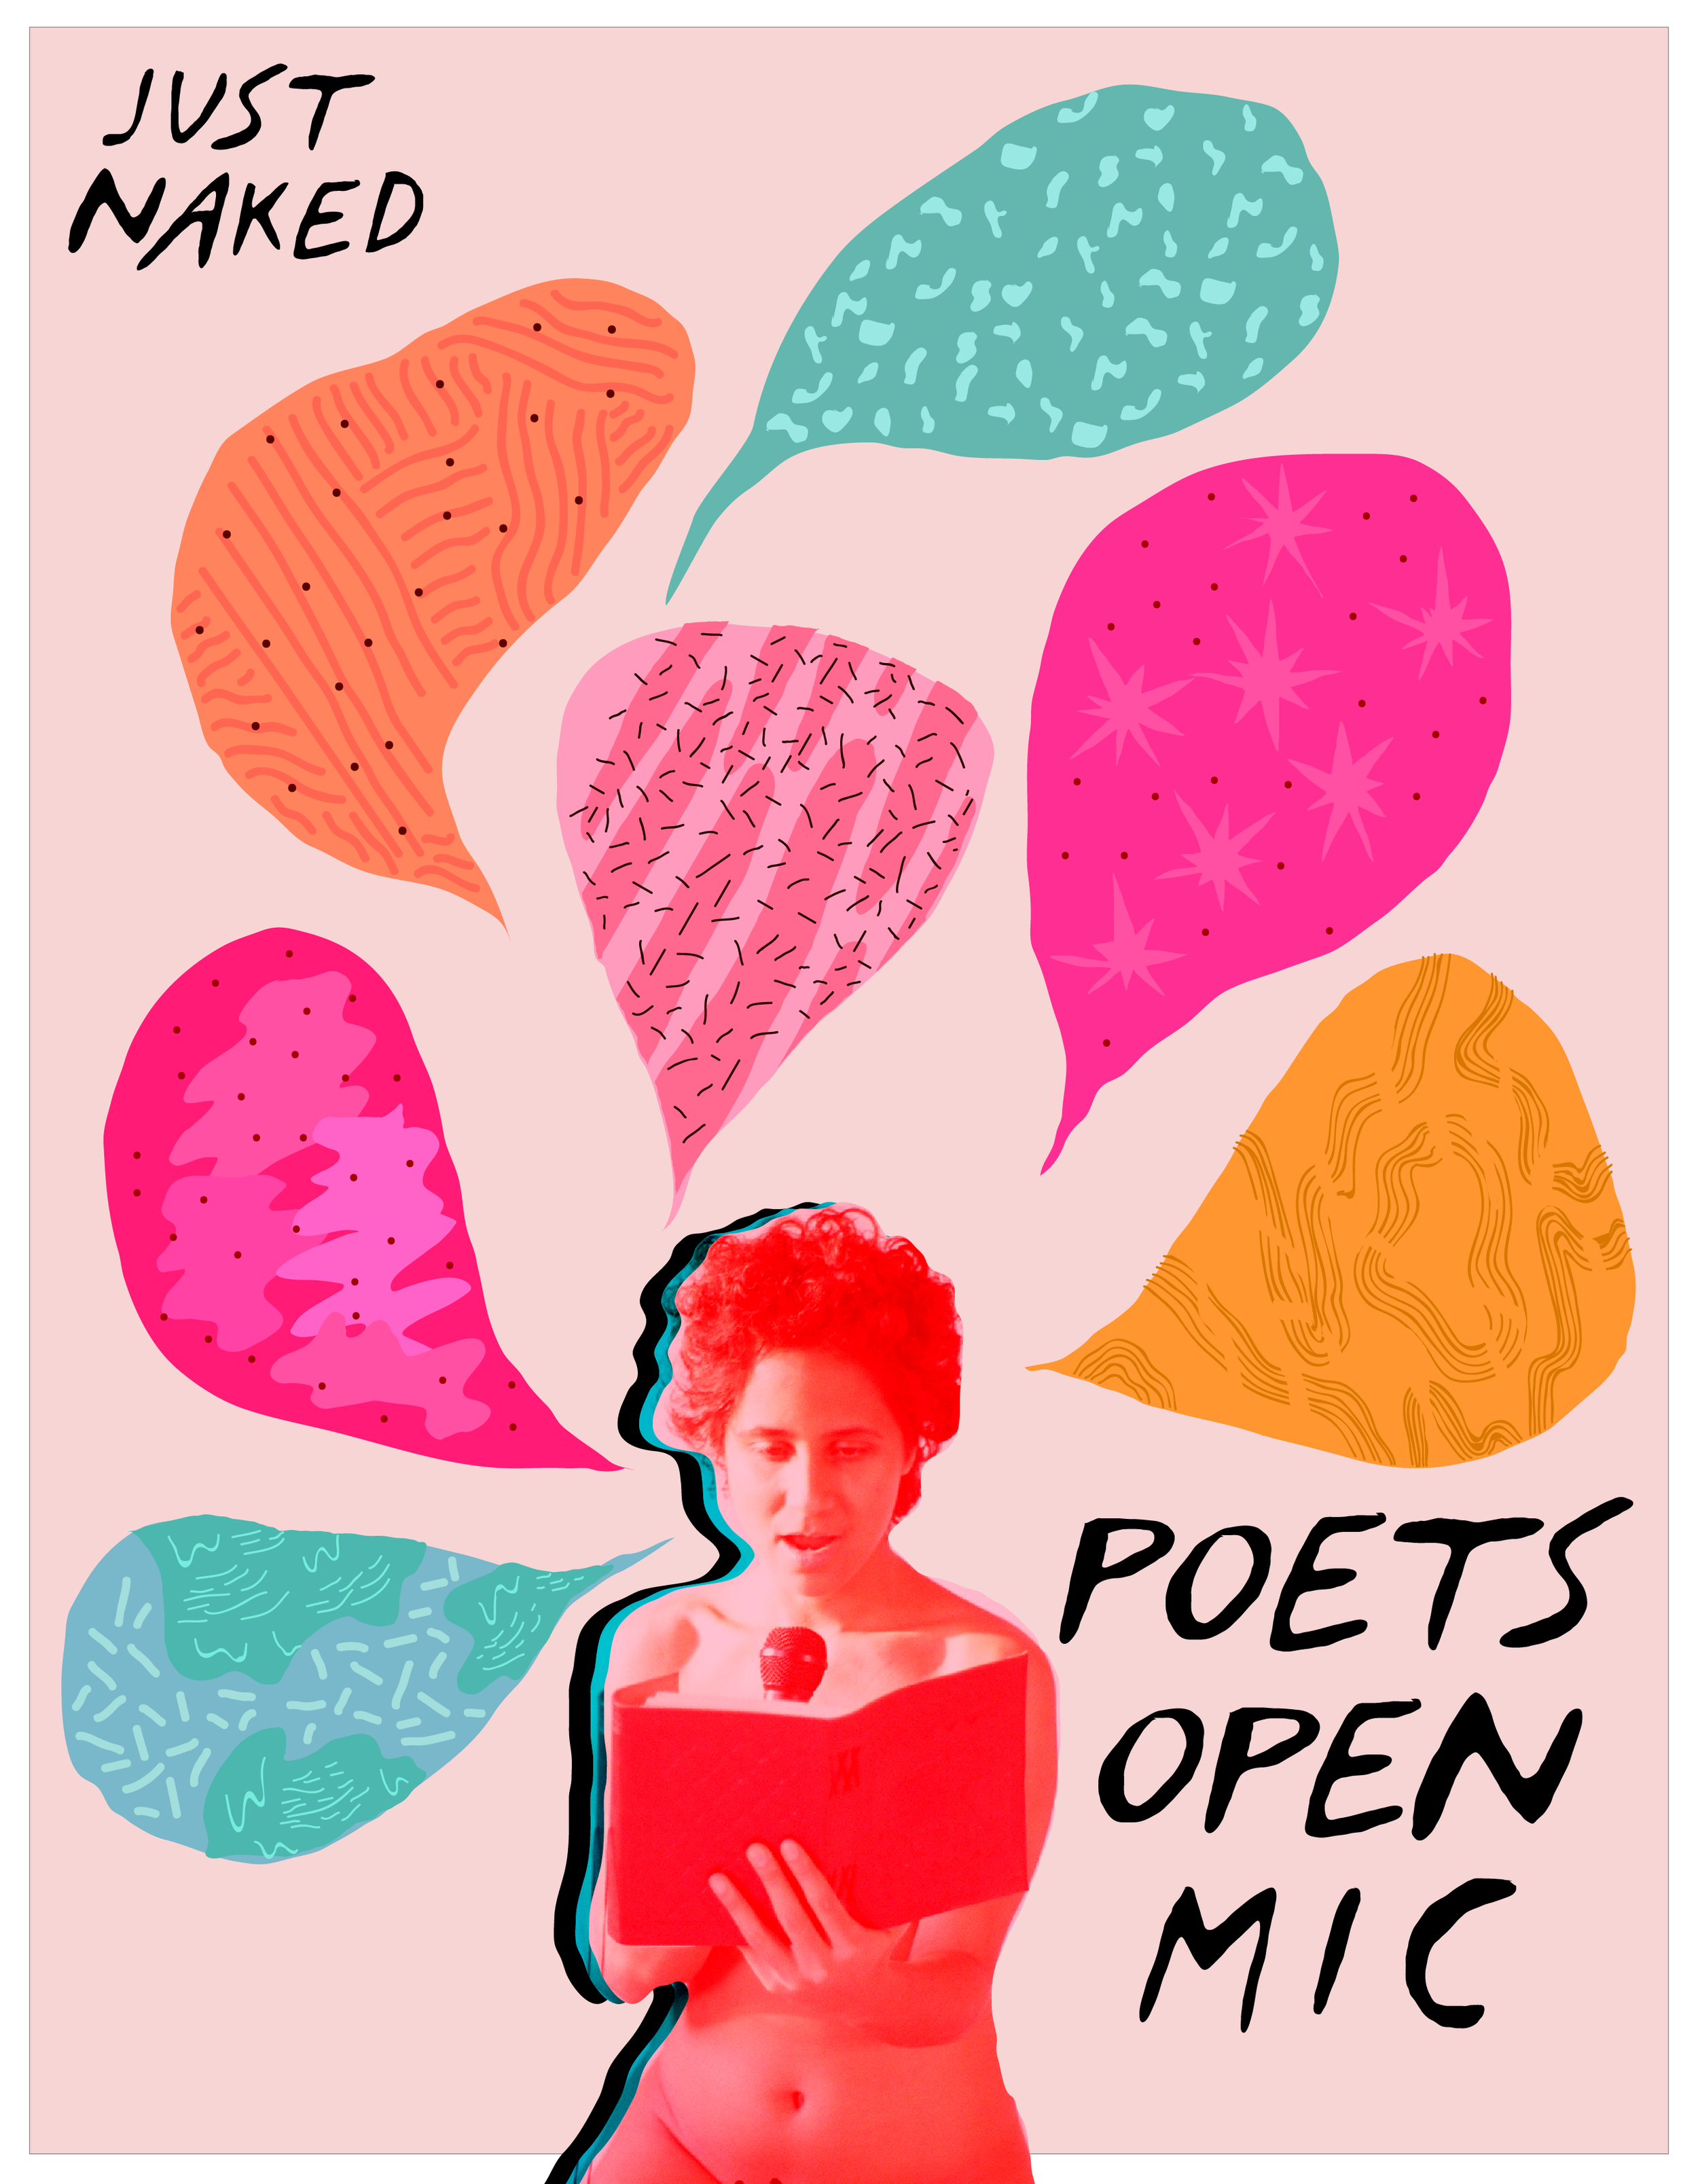 poets open mic 3-02.png